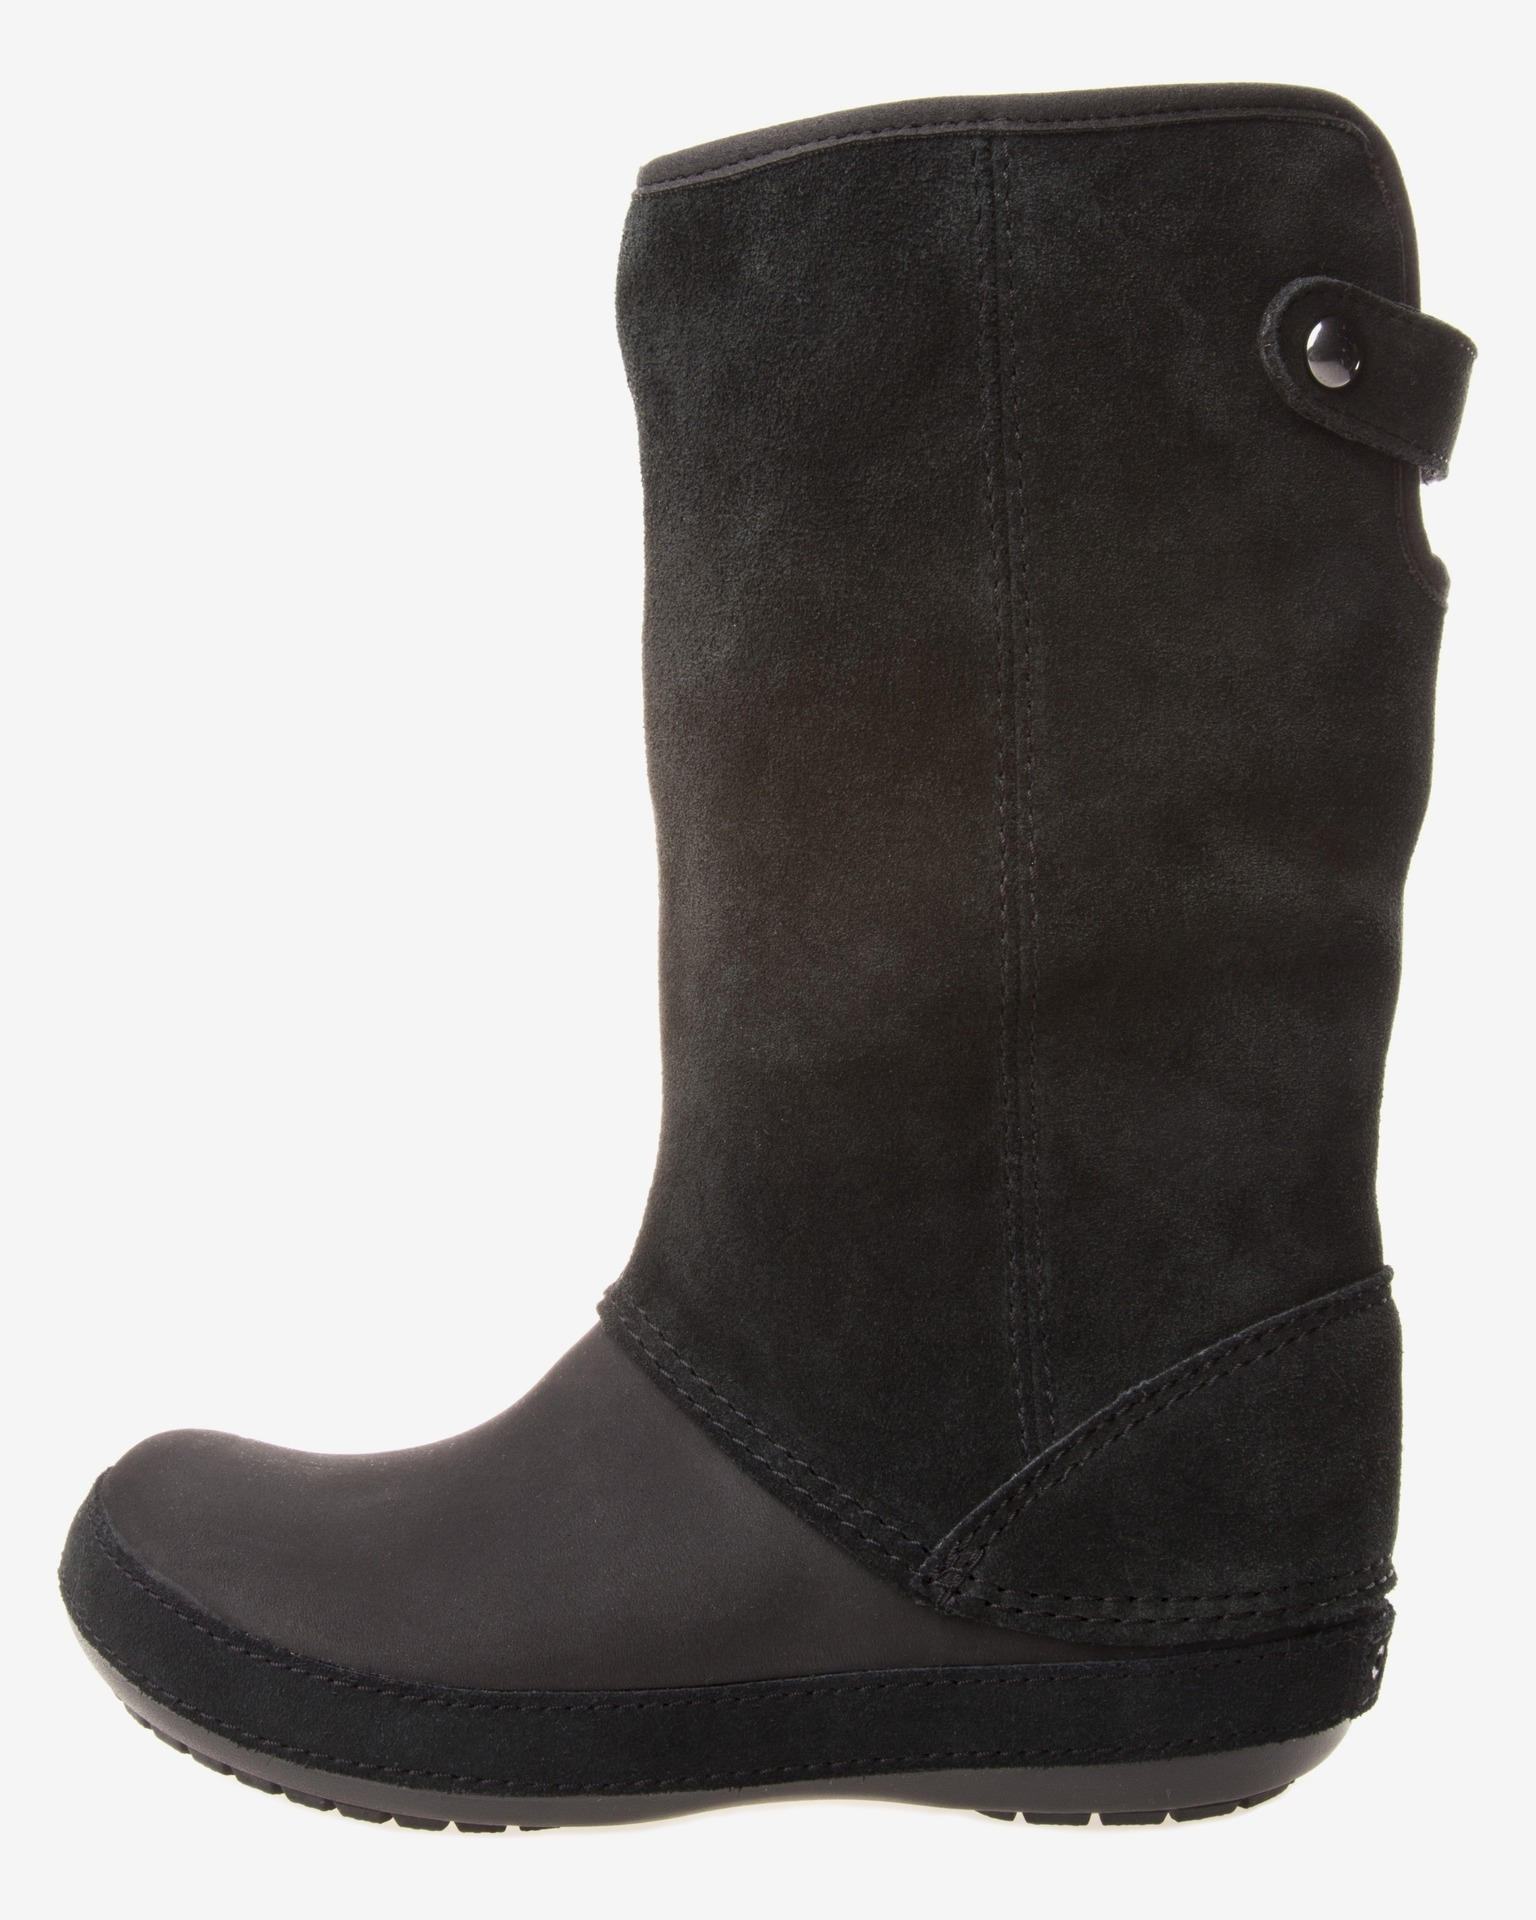 women's boots & clogs. discovered the best in womens boots, crocs womens boots are sure to get you through the season and comfort, style, and warmth.